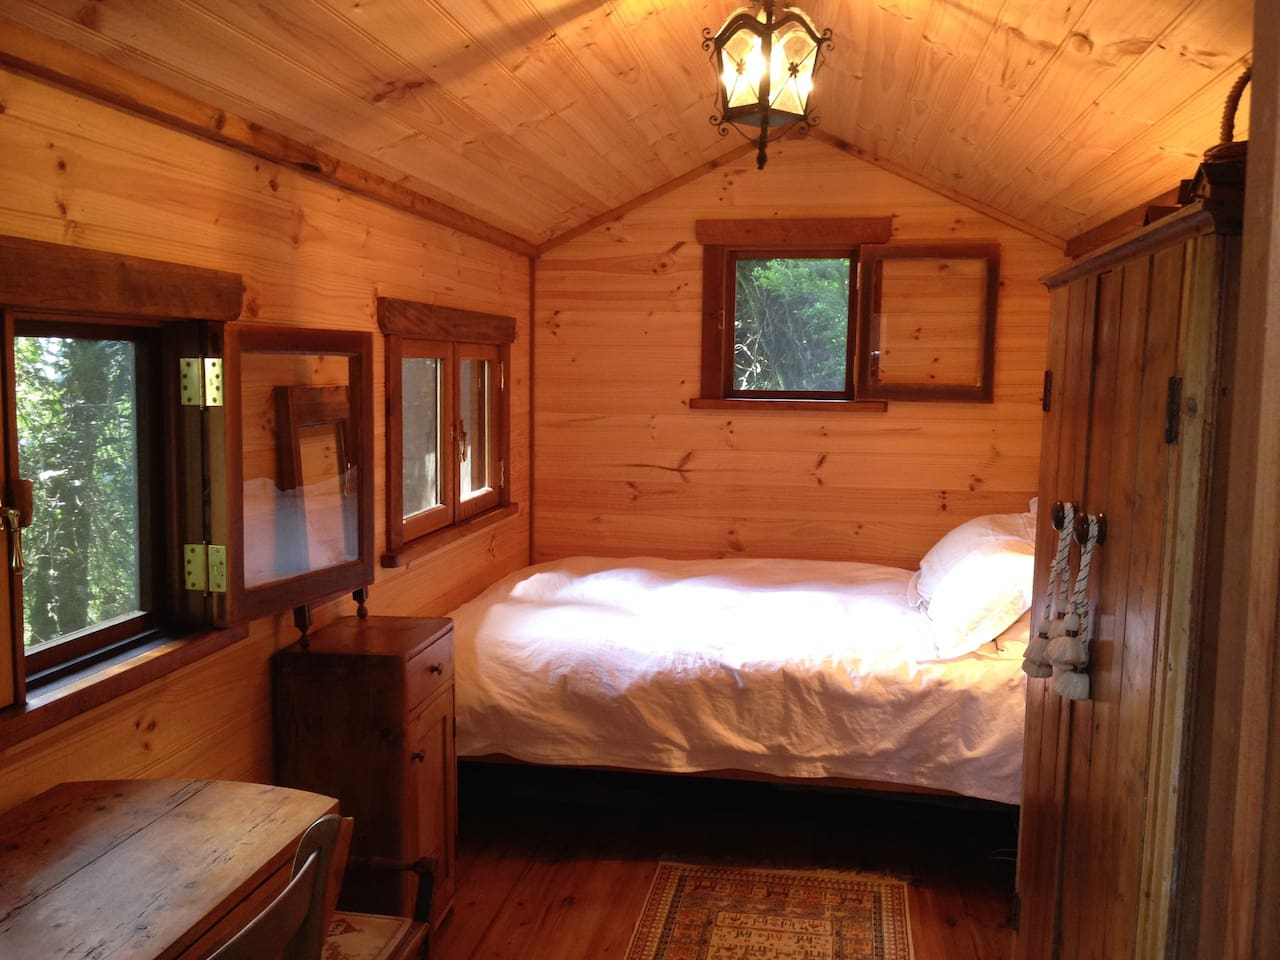 Romantic, cosy bedroom hut nestled within the forest